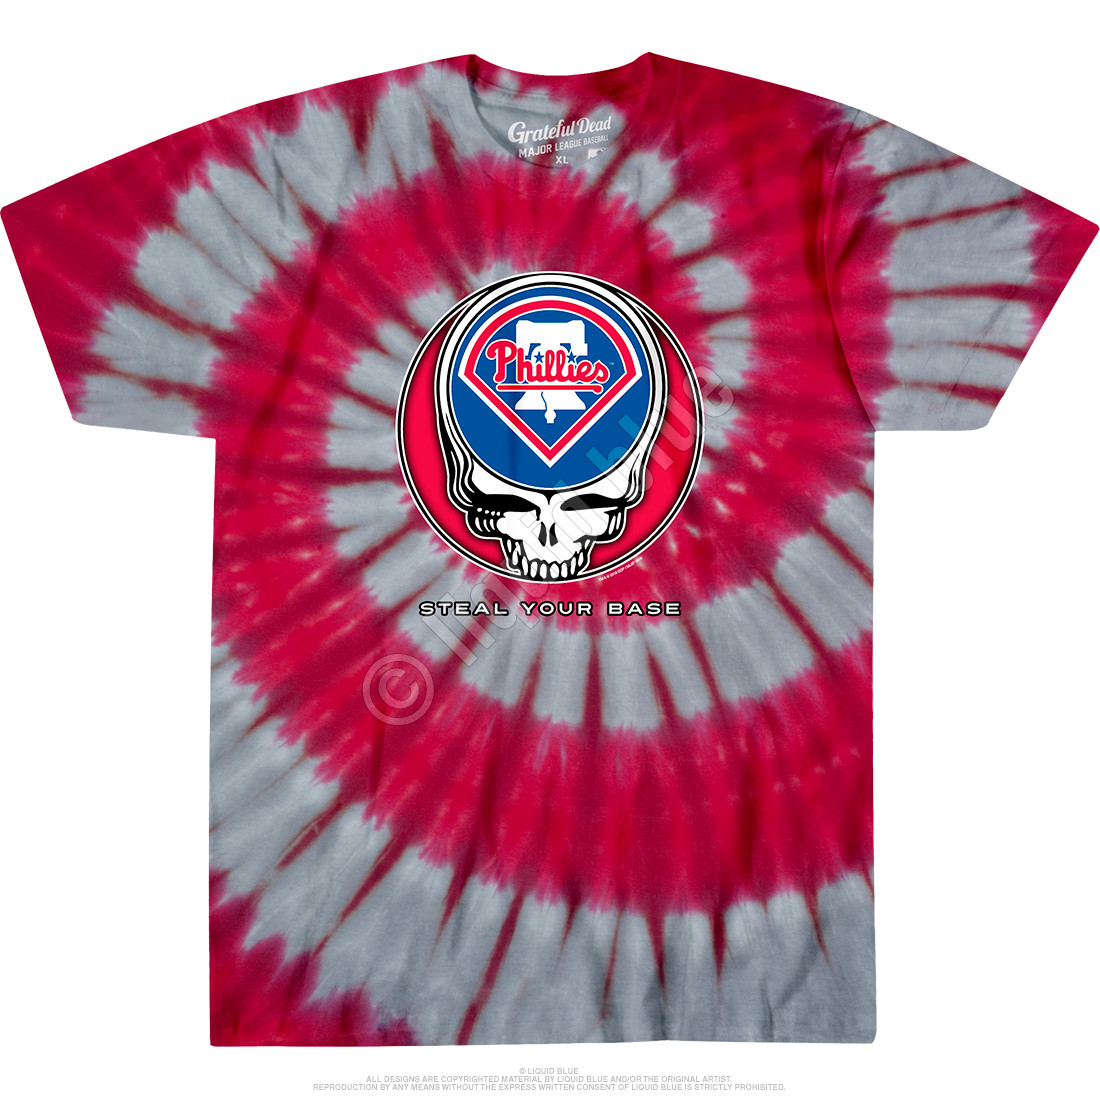 8f4b3ac547c MLB Philadelphia Phillies GD Steal Your Base Tie-Dye T-Shirt Tee ...